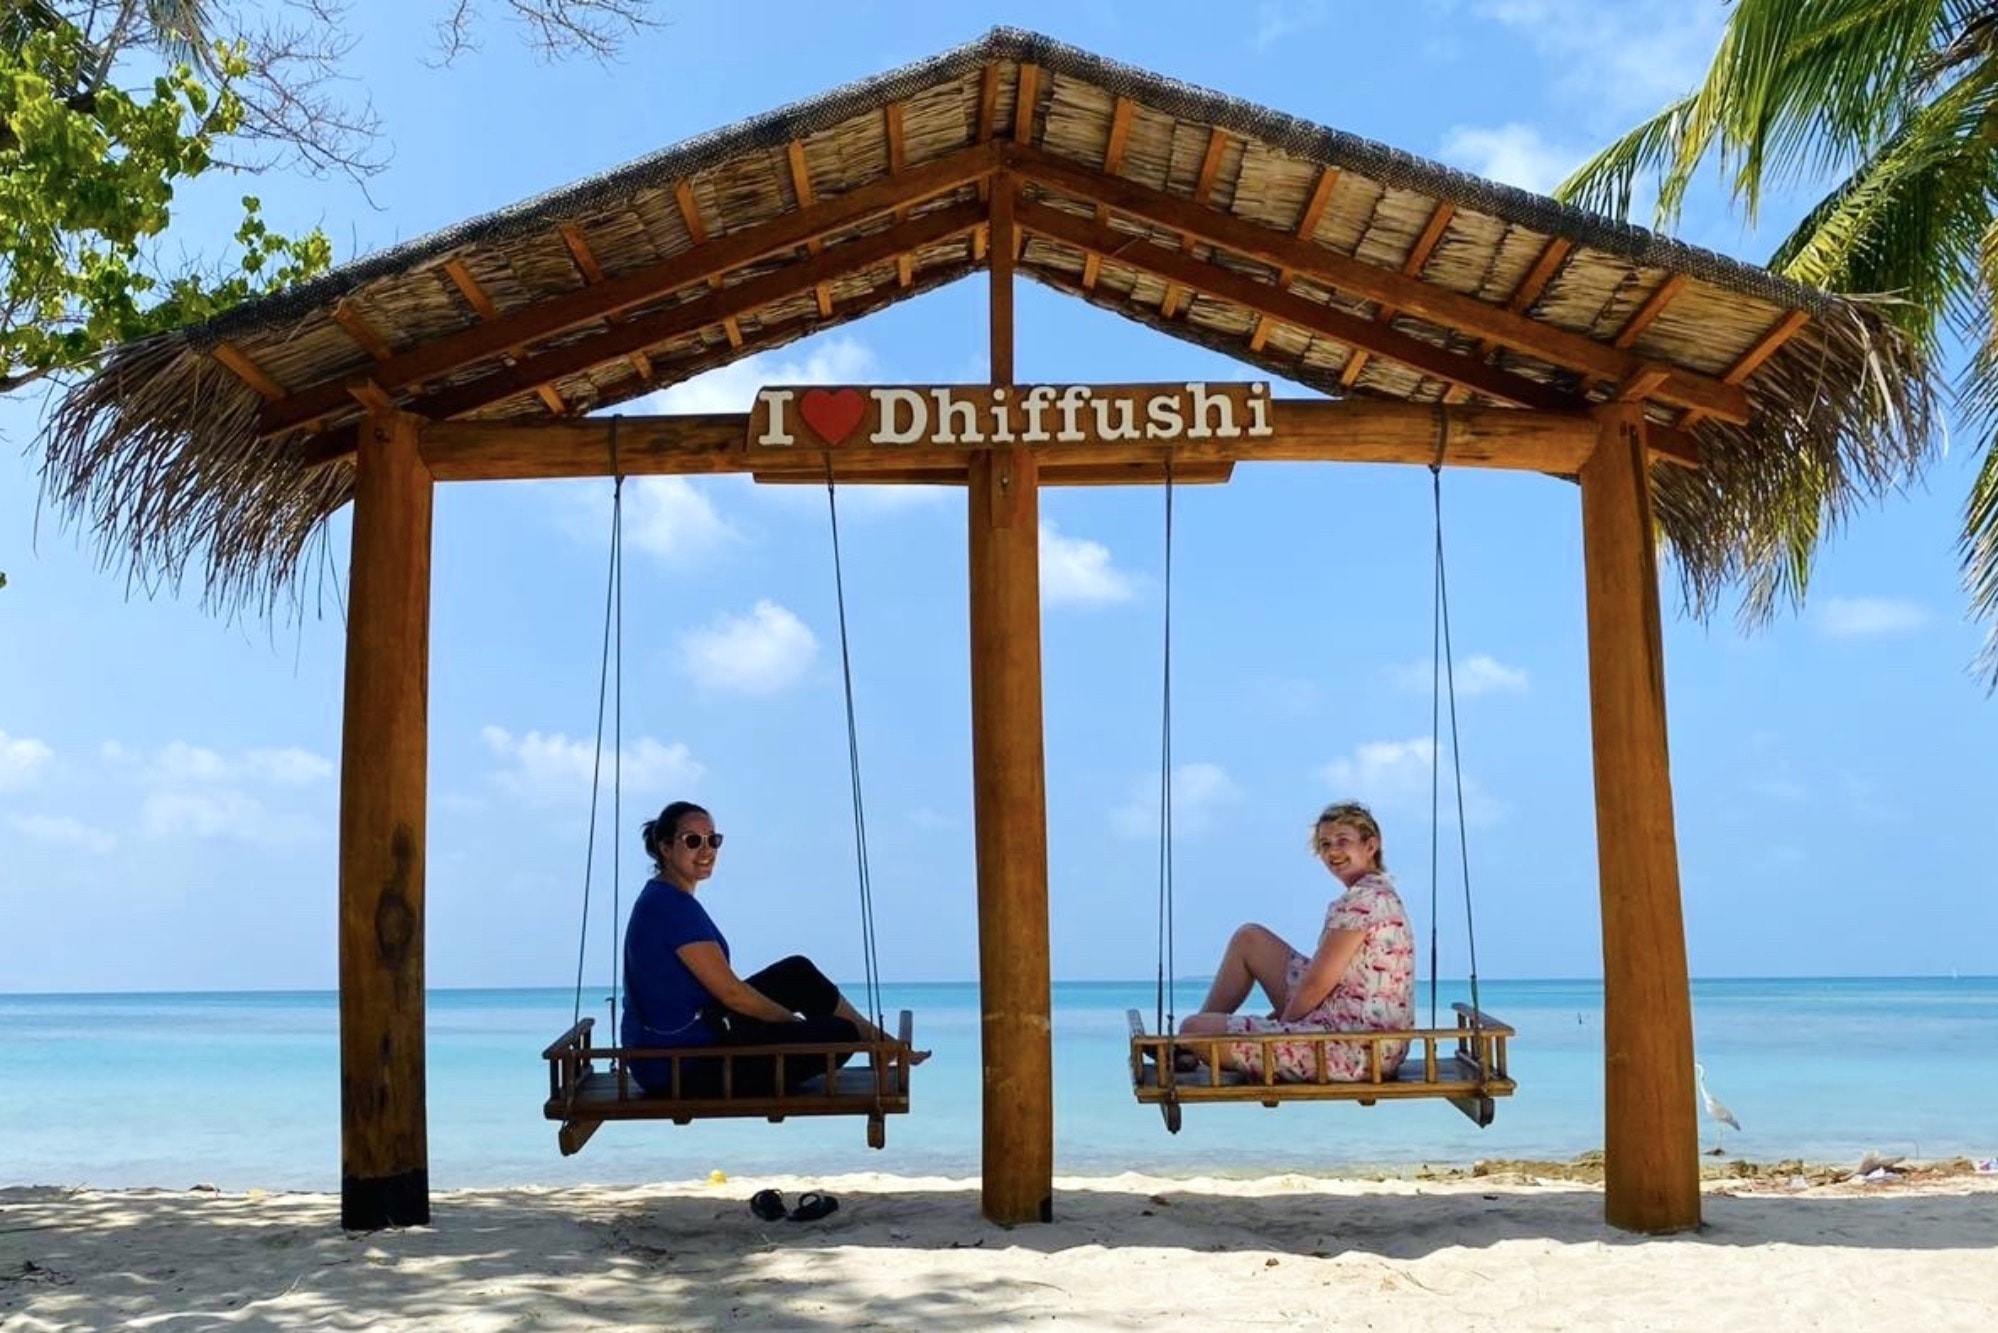 Dhiffushi maldives swing beach sea